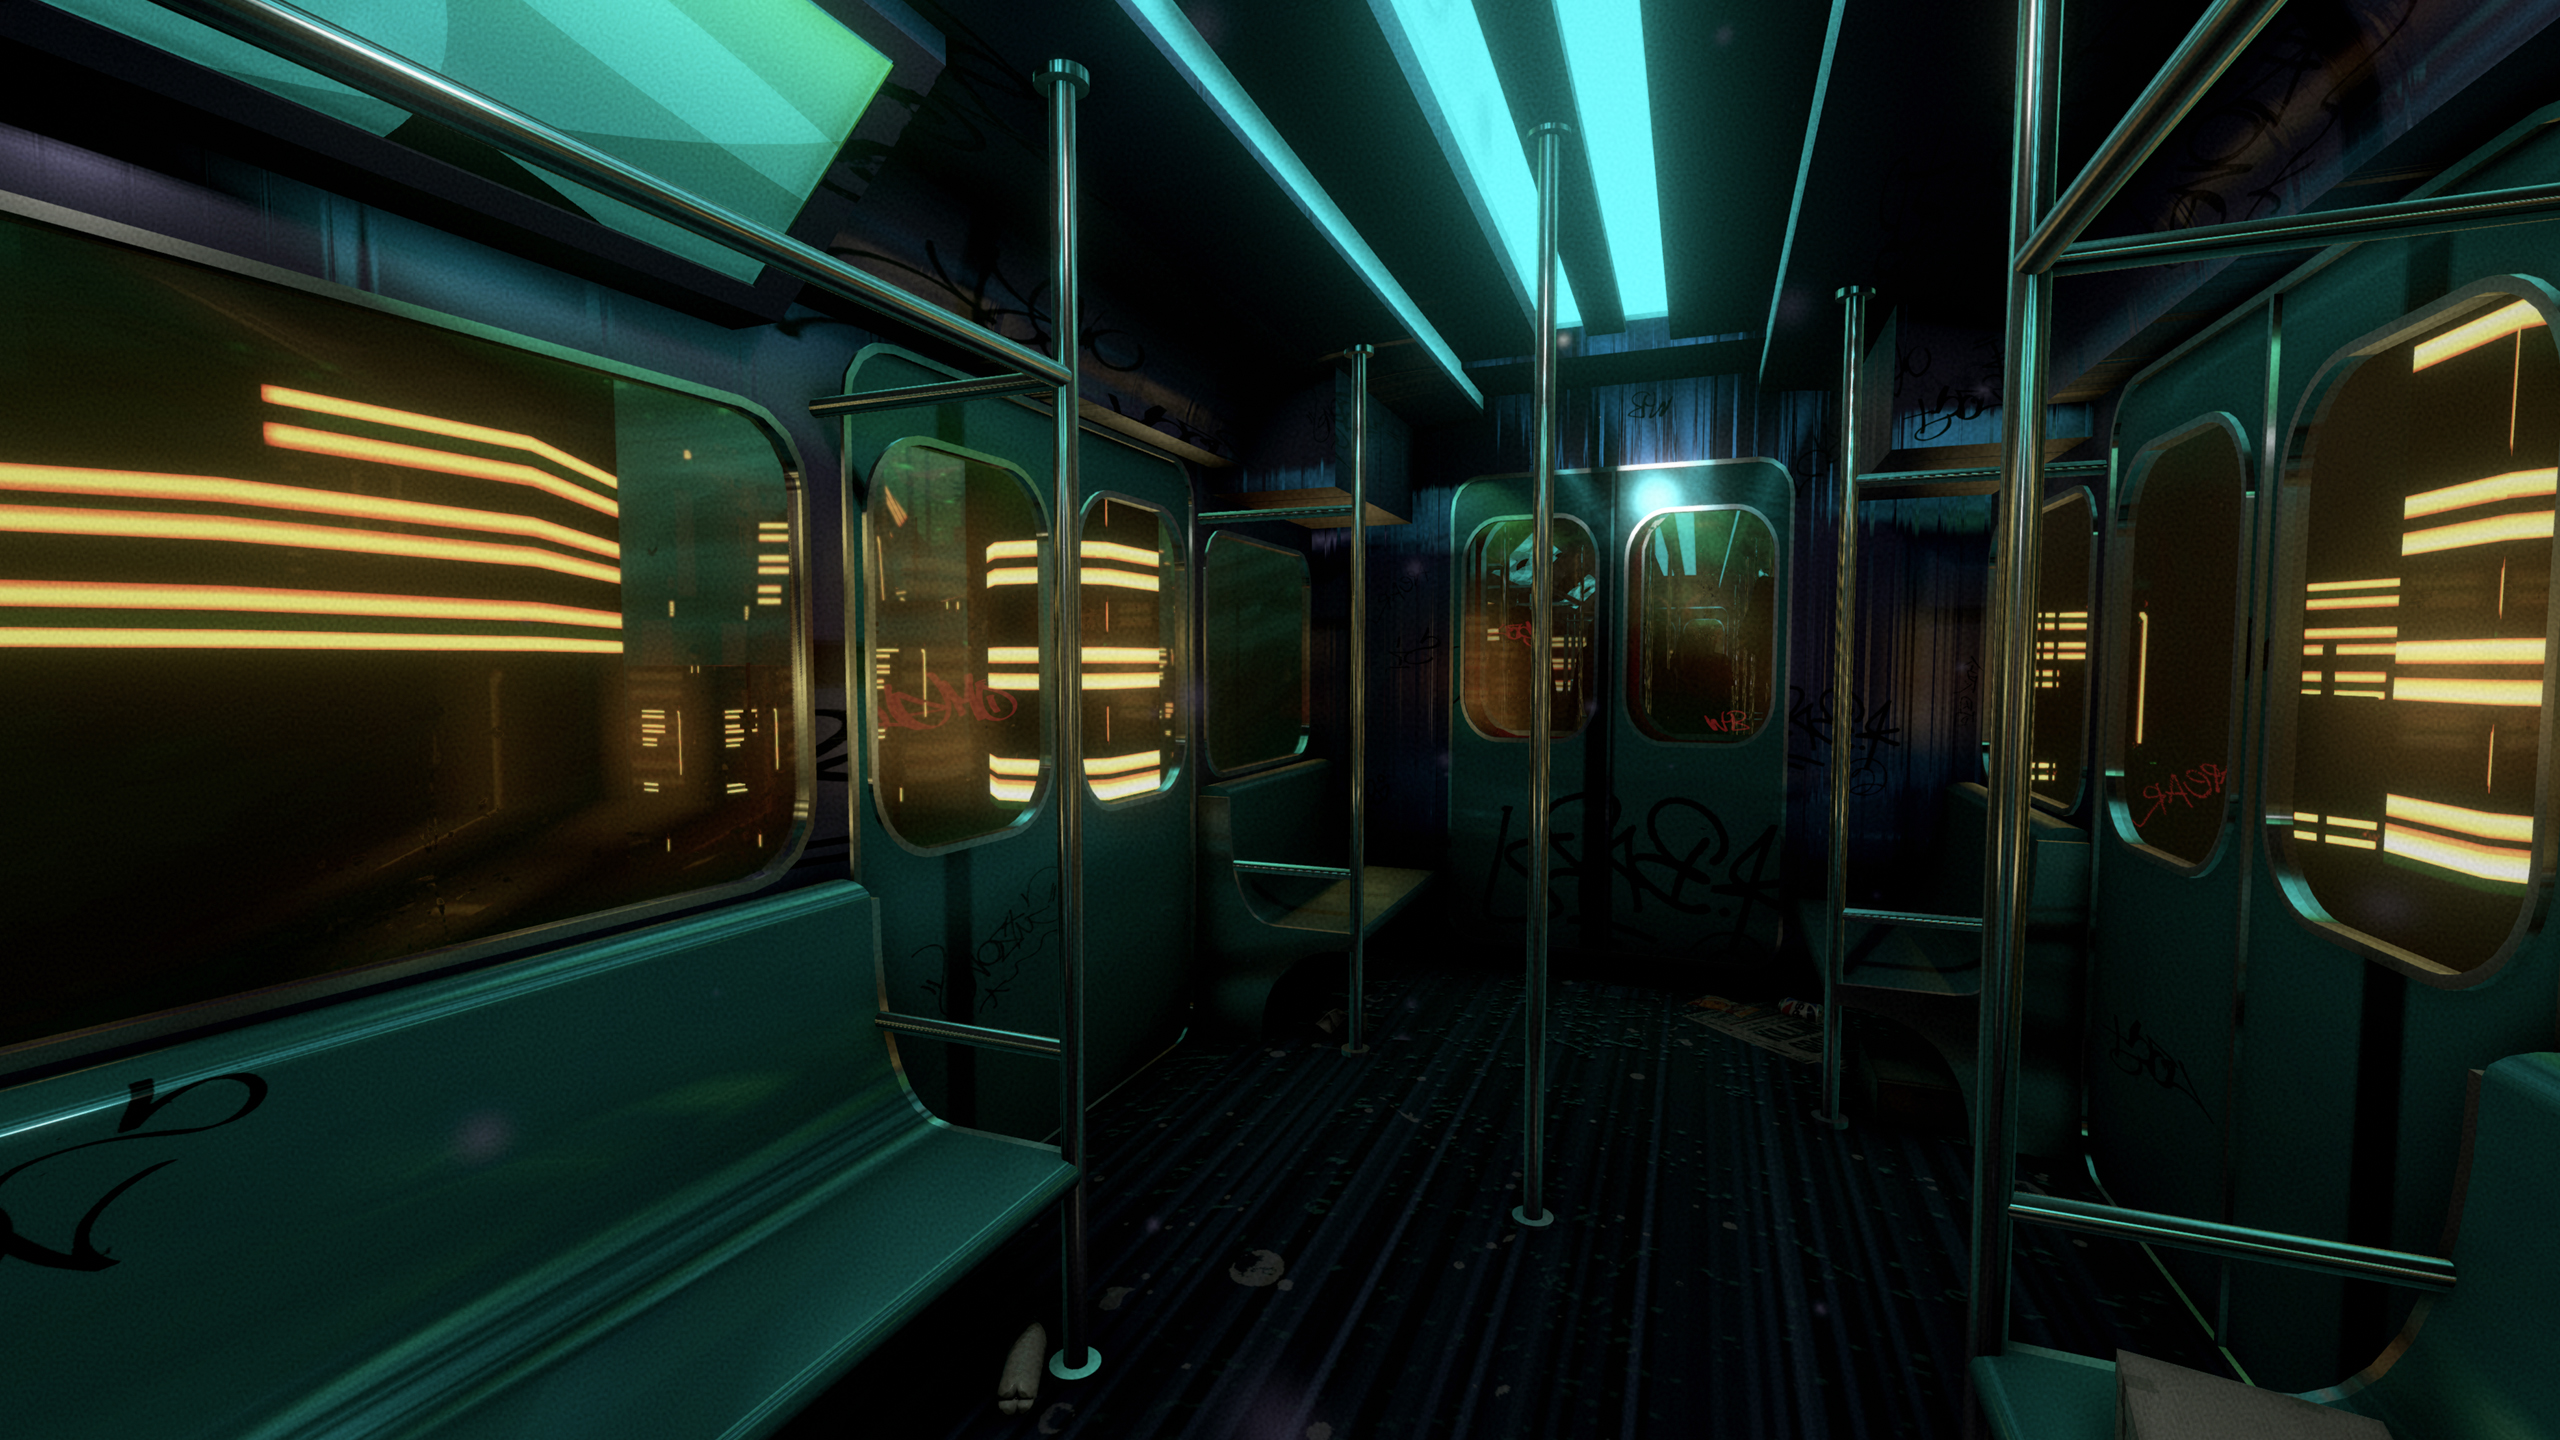 Nightline is a dreamy game about taking a subway train to nowhere